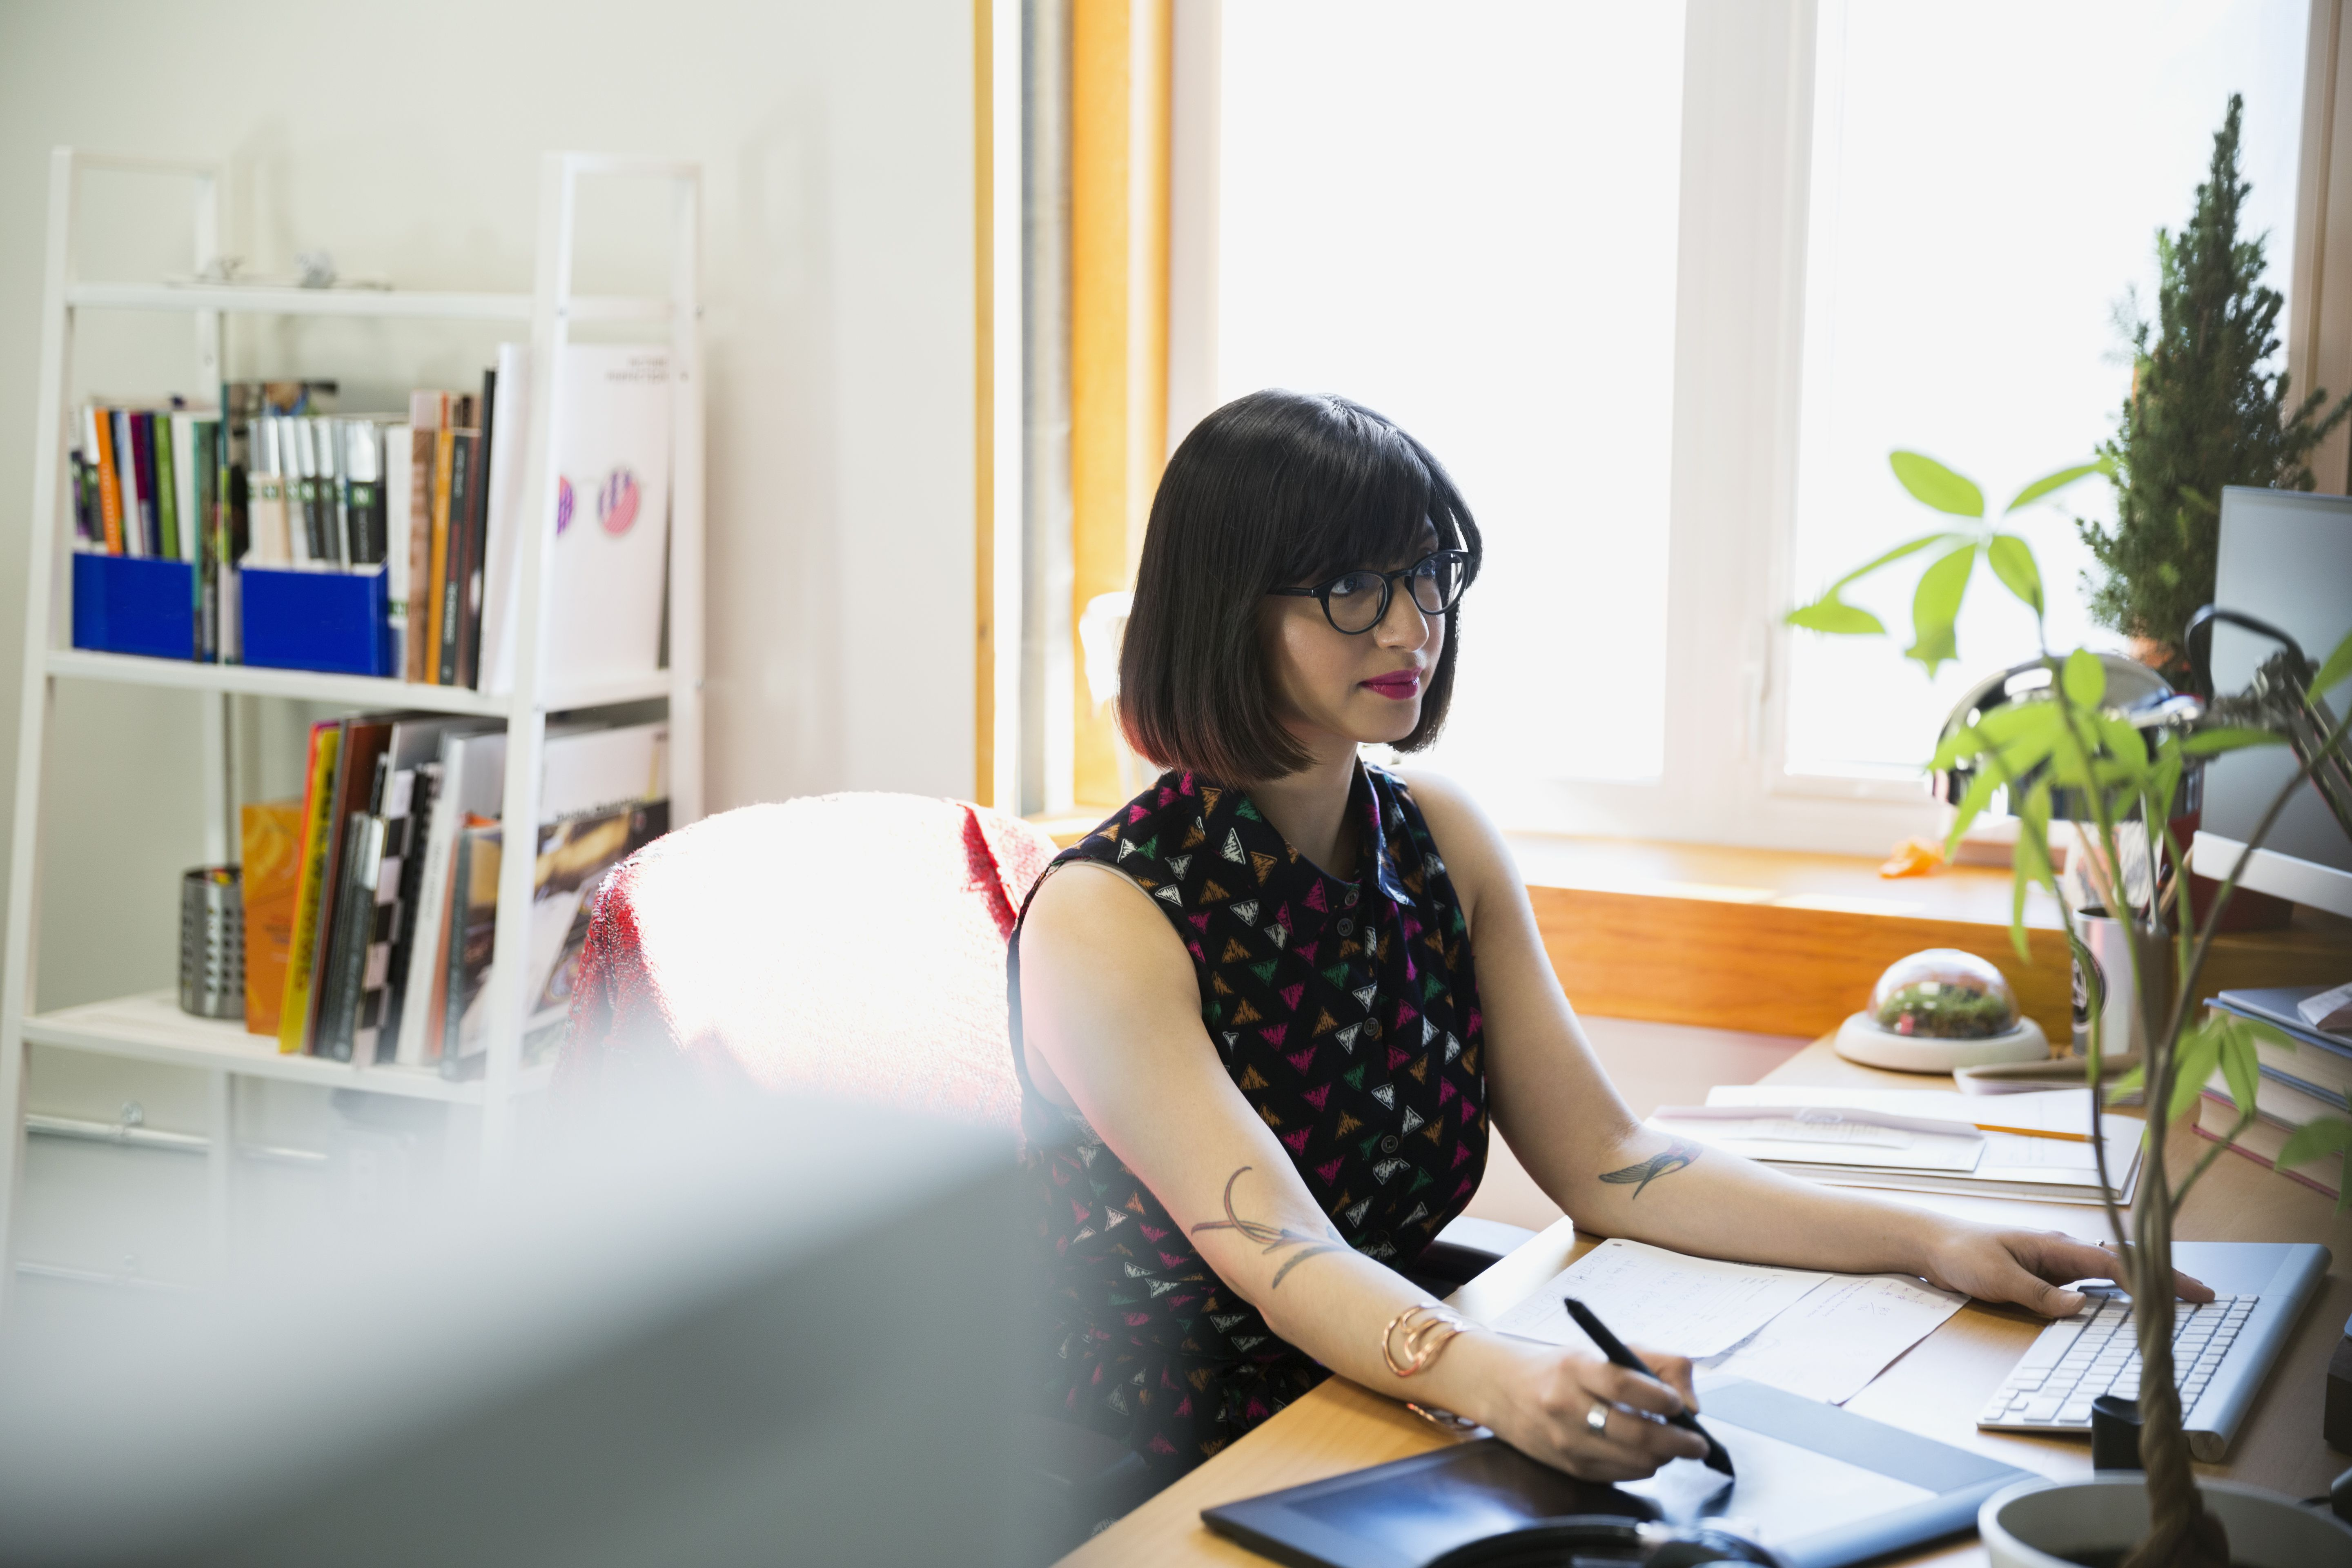 Graphic designer working with drawing tablet in office